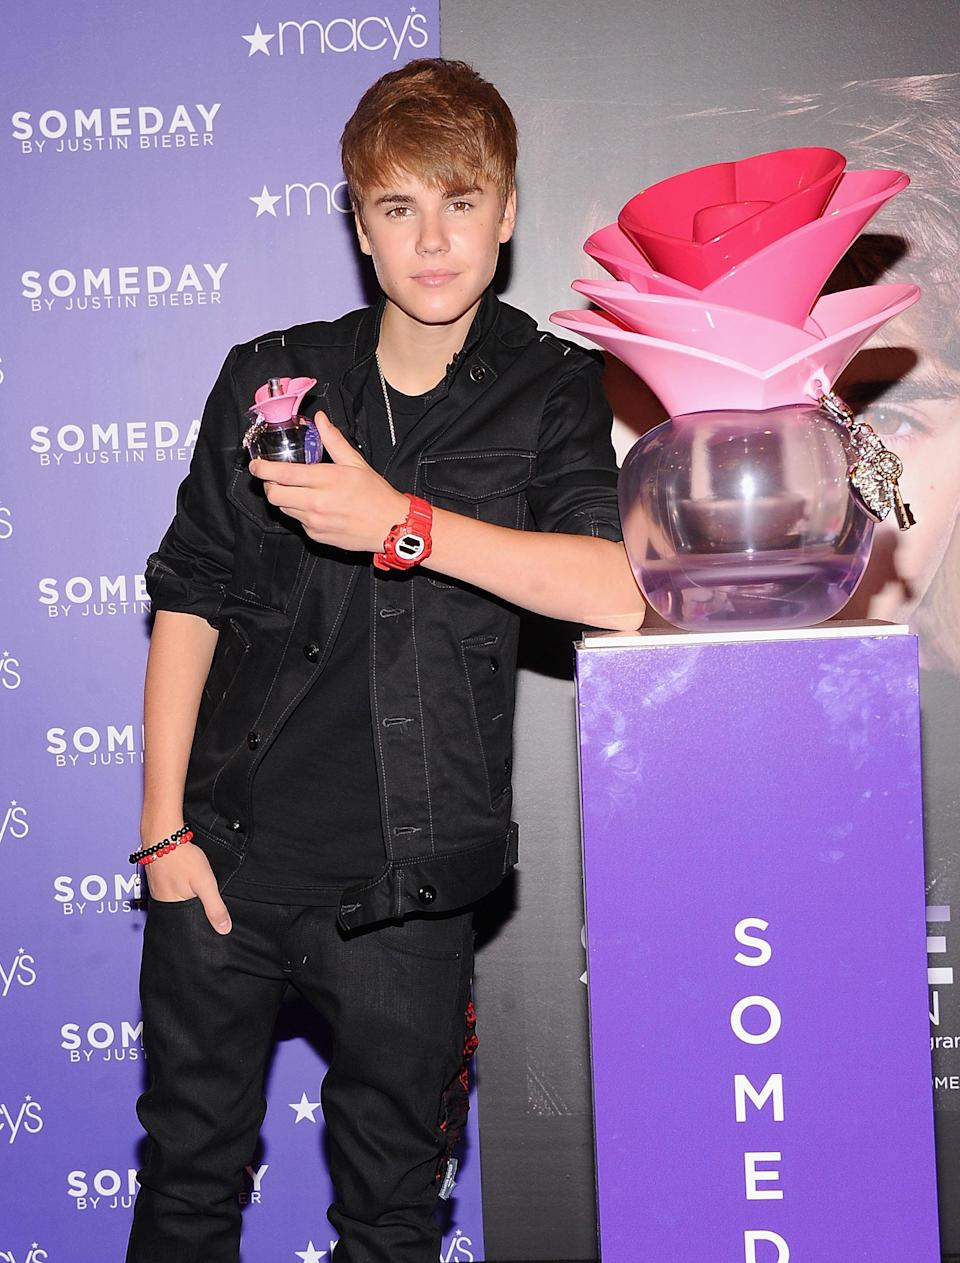 """<p>The pop sensation made the most of his young success, launching his first fragrance, Someday, in 2011. It made <a href=""""http://wwd.com/beauty-industry-news/fragrance/biebers-someday-scent-shatters-sales-records-3721517/"""" rel=""""nofollow noopener"""" target=""""_blank"""" data-ylk=""""slk:over £2 million in sales"""" class=""""link rapid-noclick-resp"""">over £2 million in sales</a> in just under three weeks at Macy's, making it a complete success. Since then, Bieber's released three more perfumes for his female fans: Girlfriend, The Key and Justin Bieber's Collector's Edition.<br><i>[Photo: Getty]</i> </p>"""